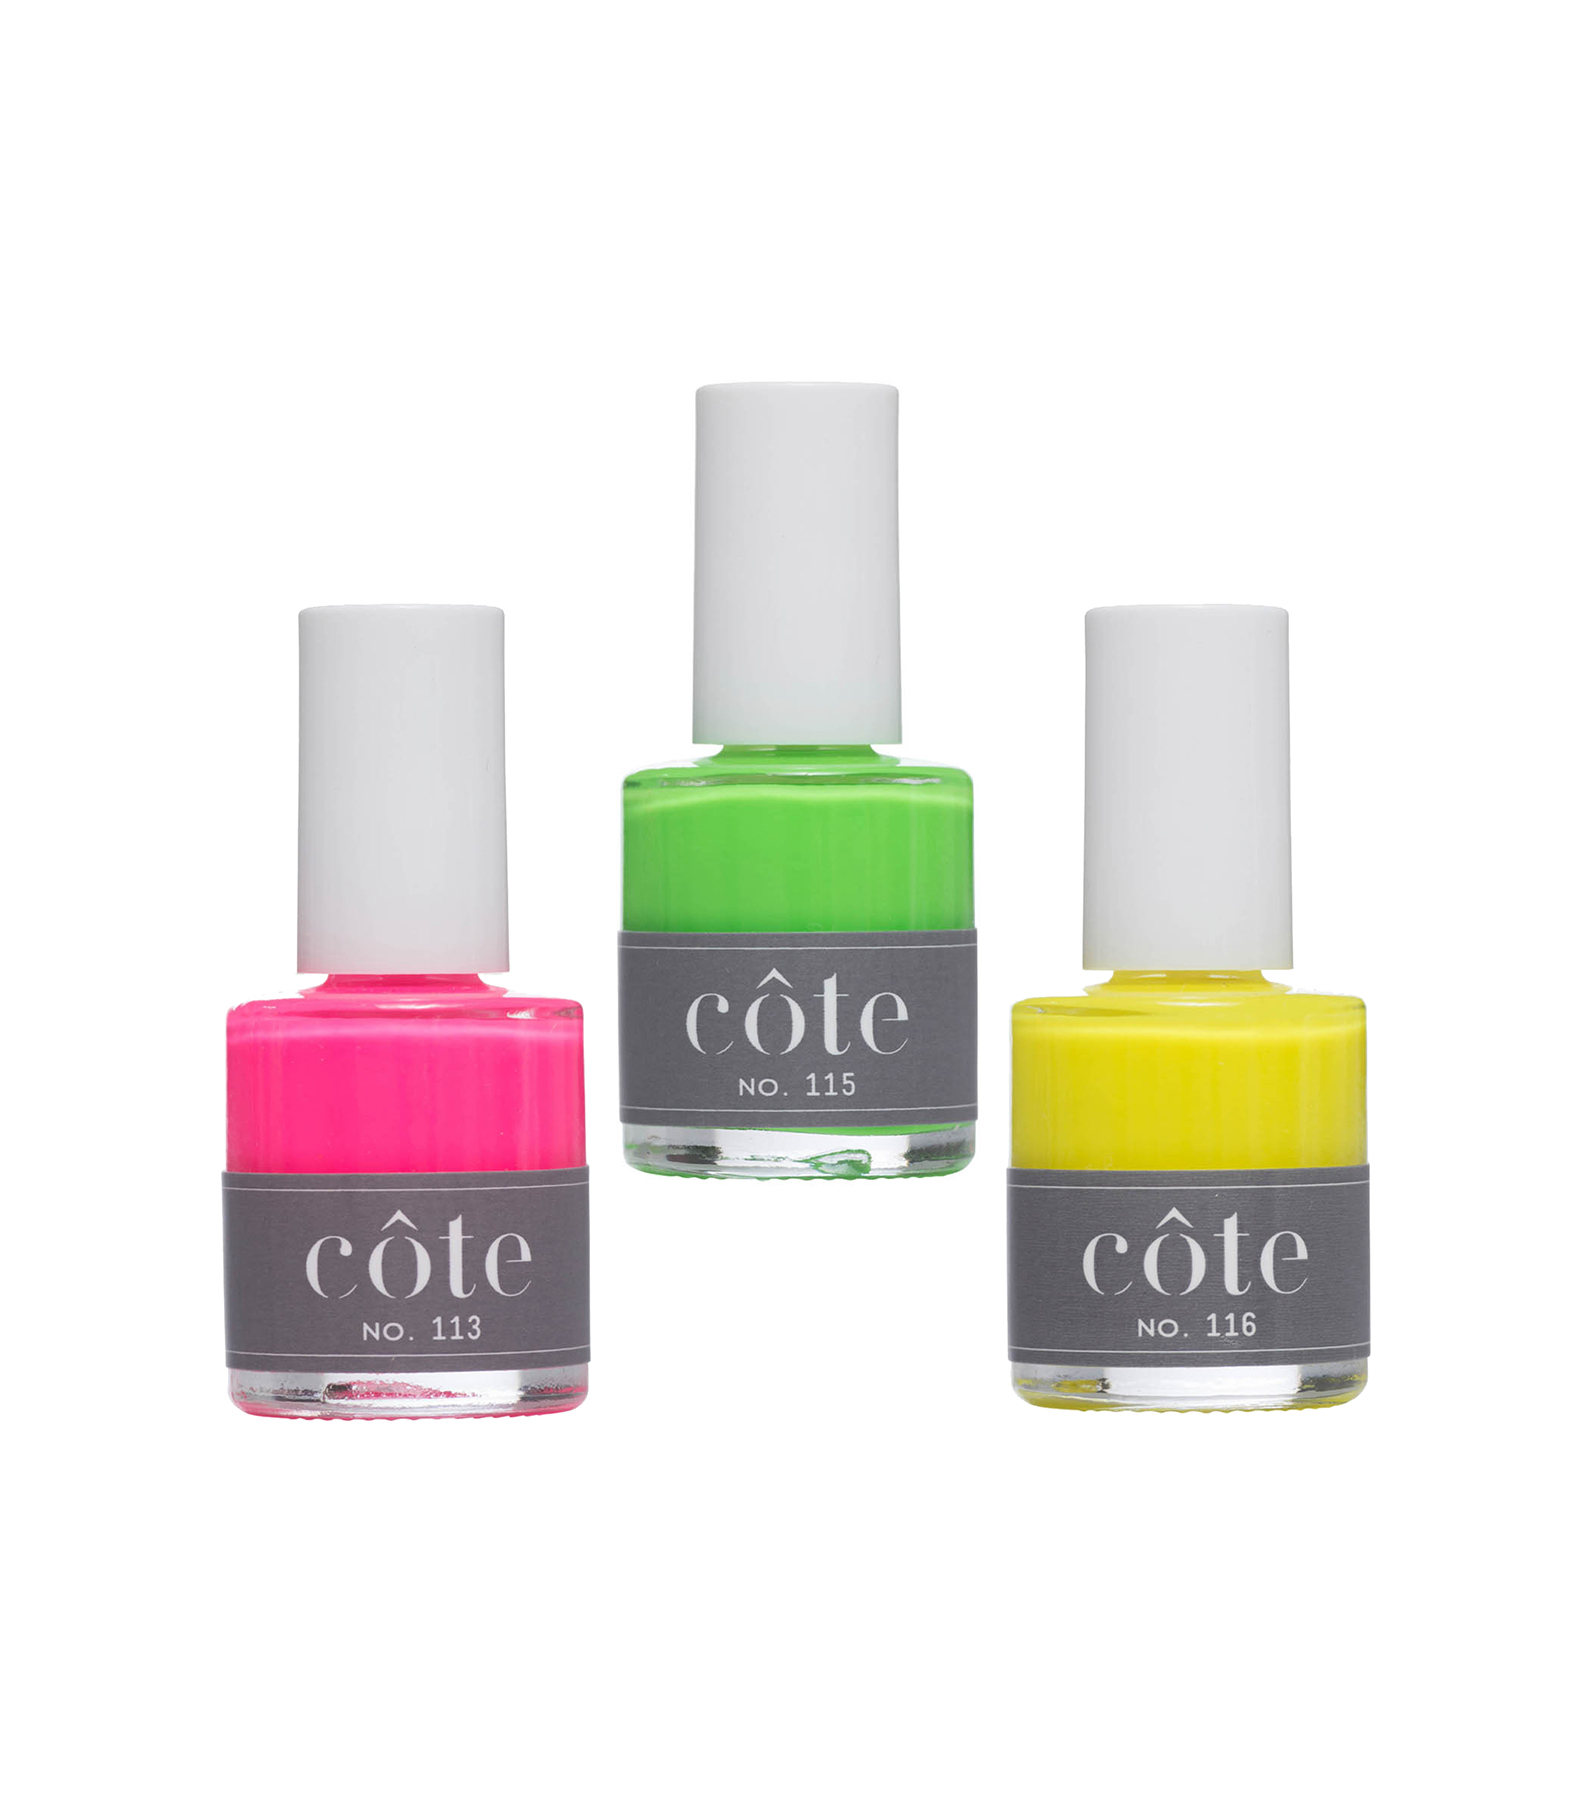 Côte Nail Polish in Nos. 113, 115, and 116